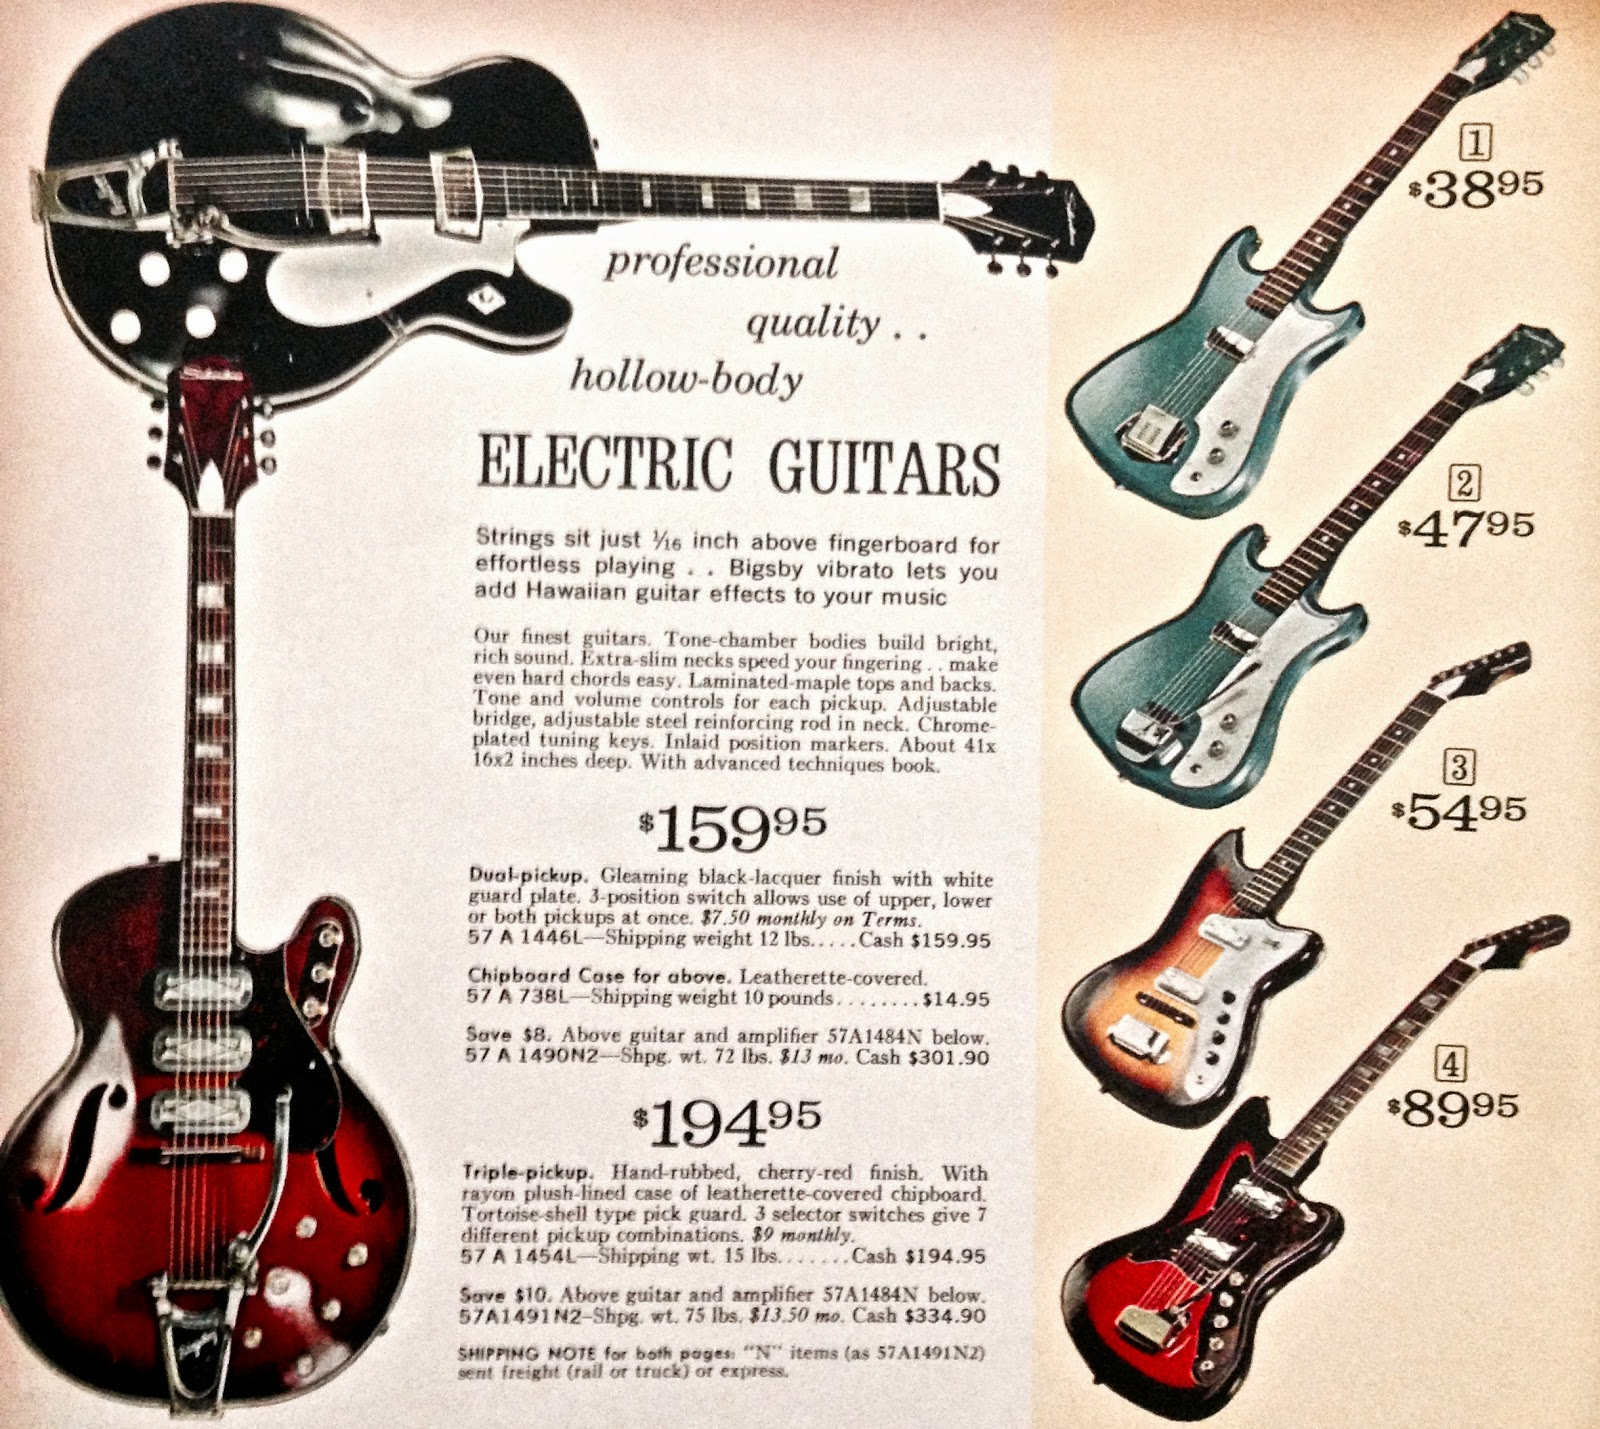 enchanting three pickup guitar frieze wiring diagram. Black Bedroom Furniture Sets. Home Design Ideas